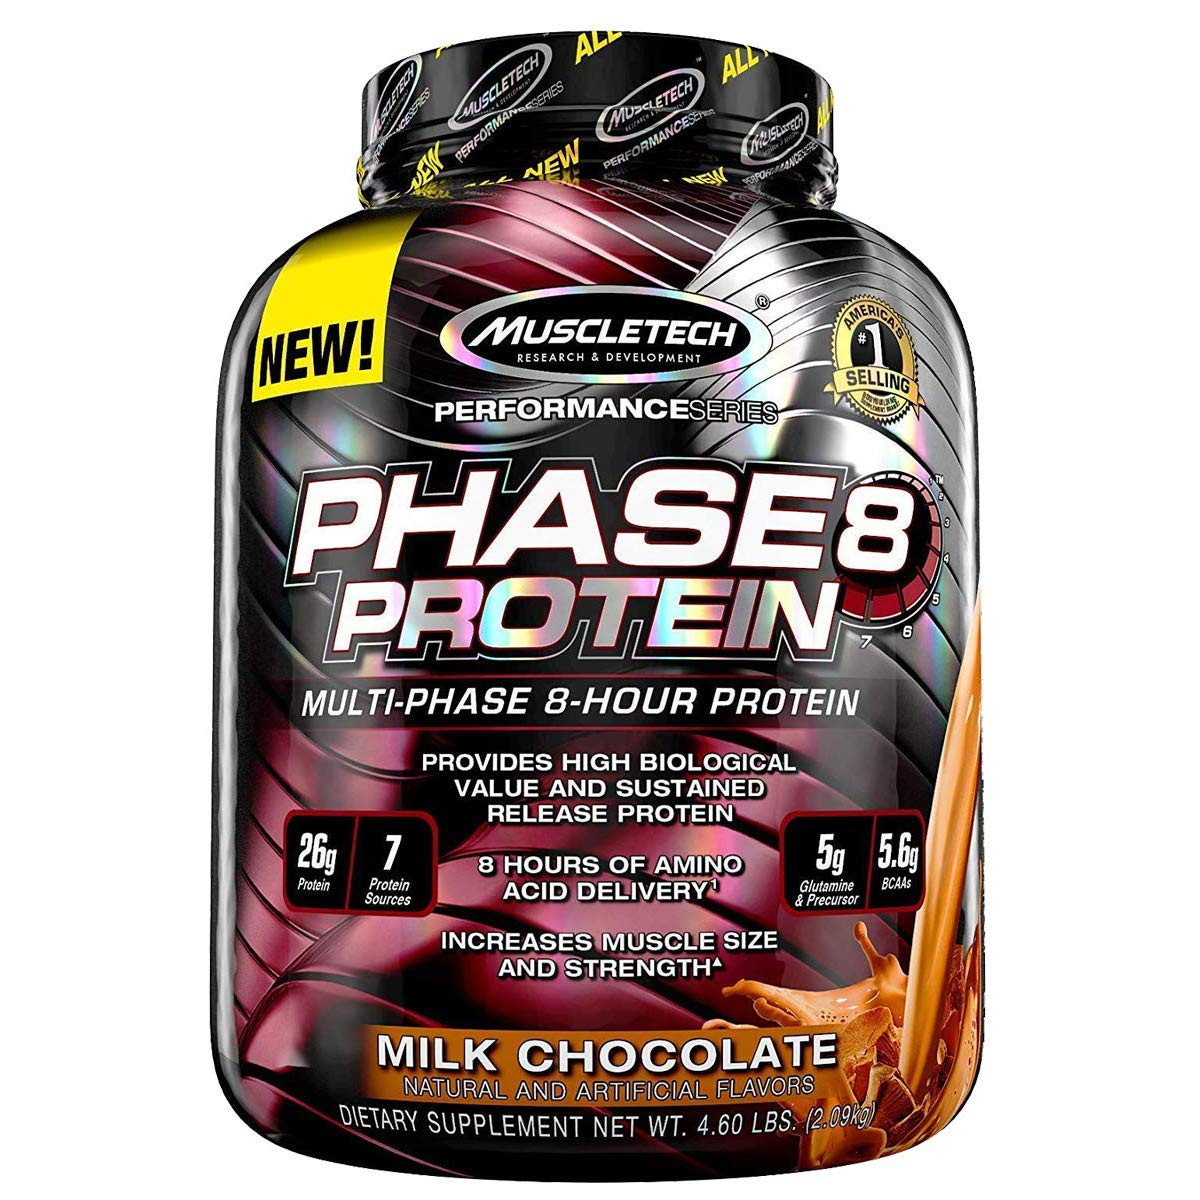 MuscleTech Performance Series Phase 8 Protein - 4.6 lbs (2.09 kg) (Milk Chocolate)